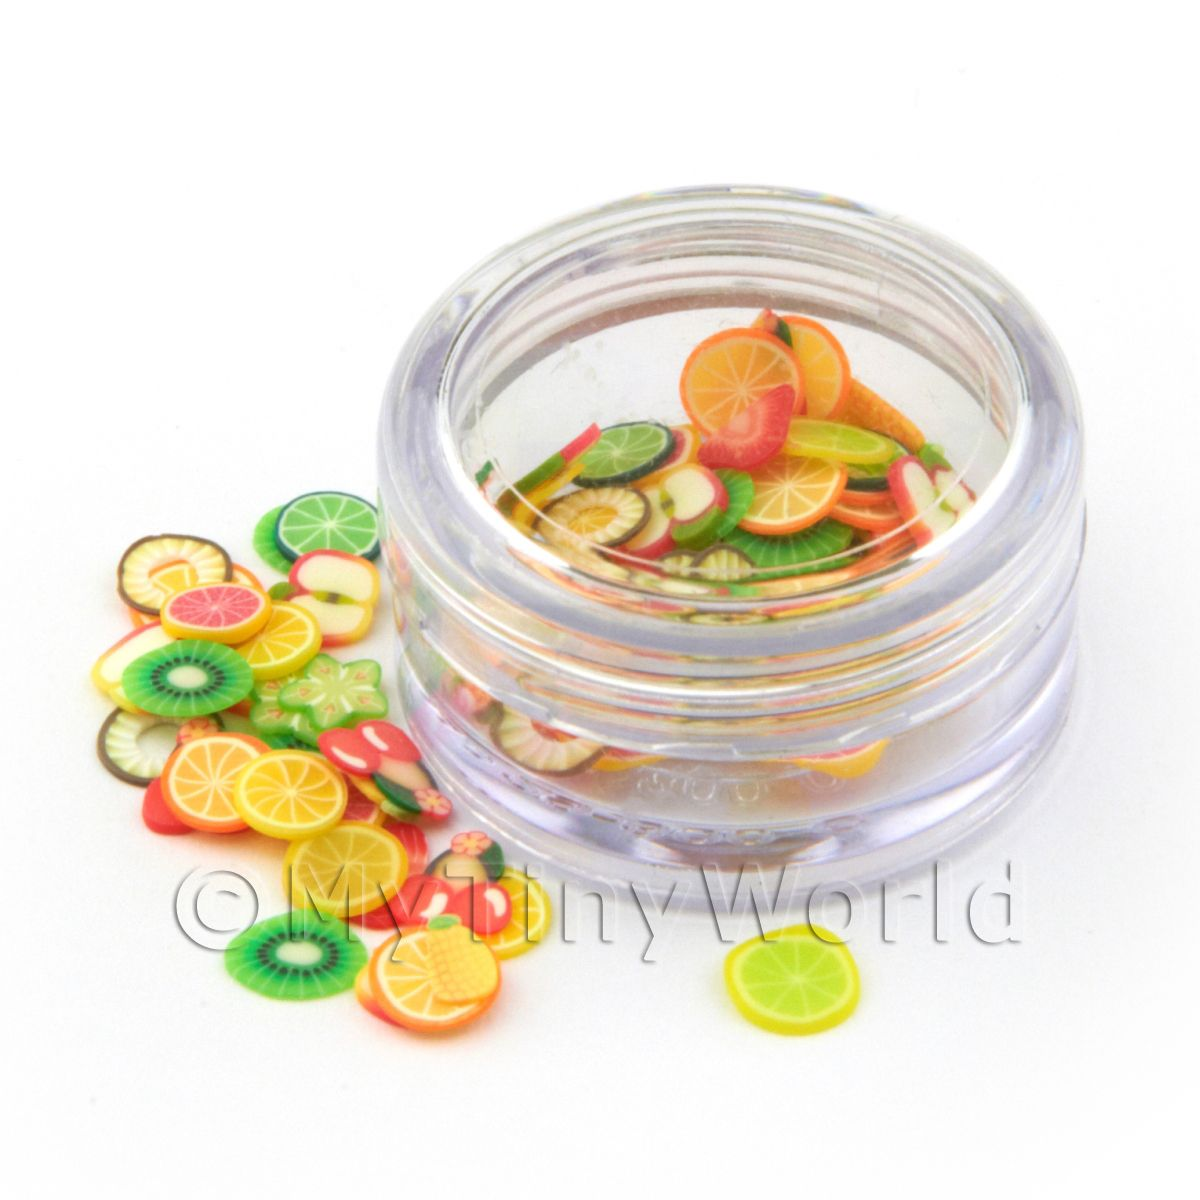 Mixed Fruit Nail Art Pot Containing 120 Slices